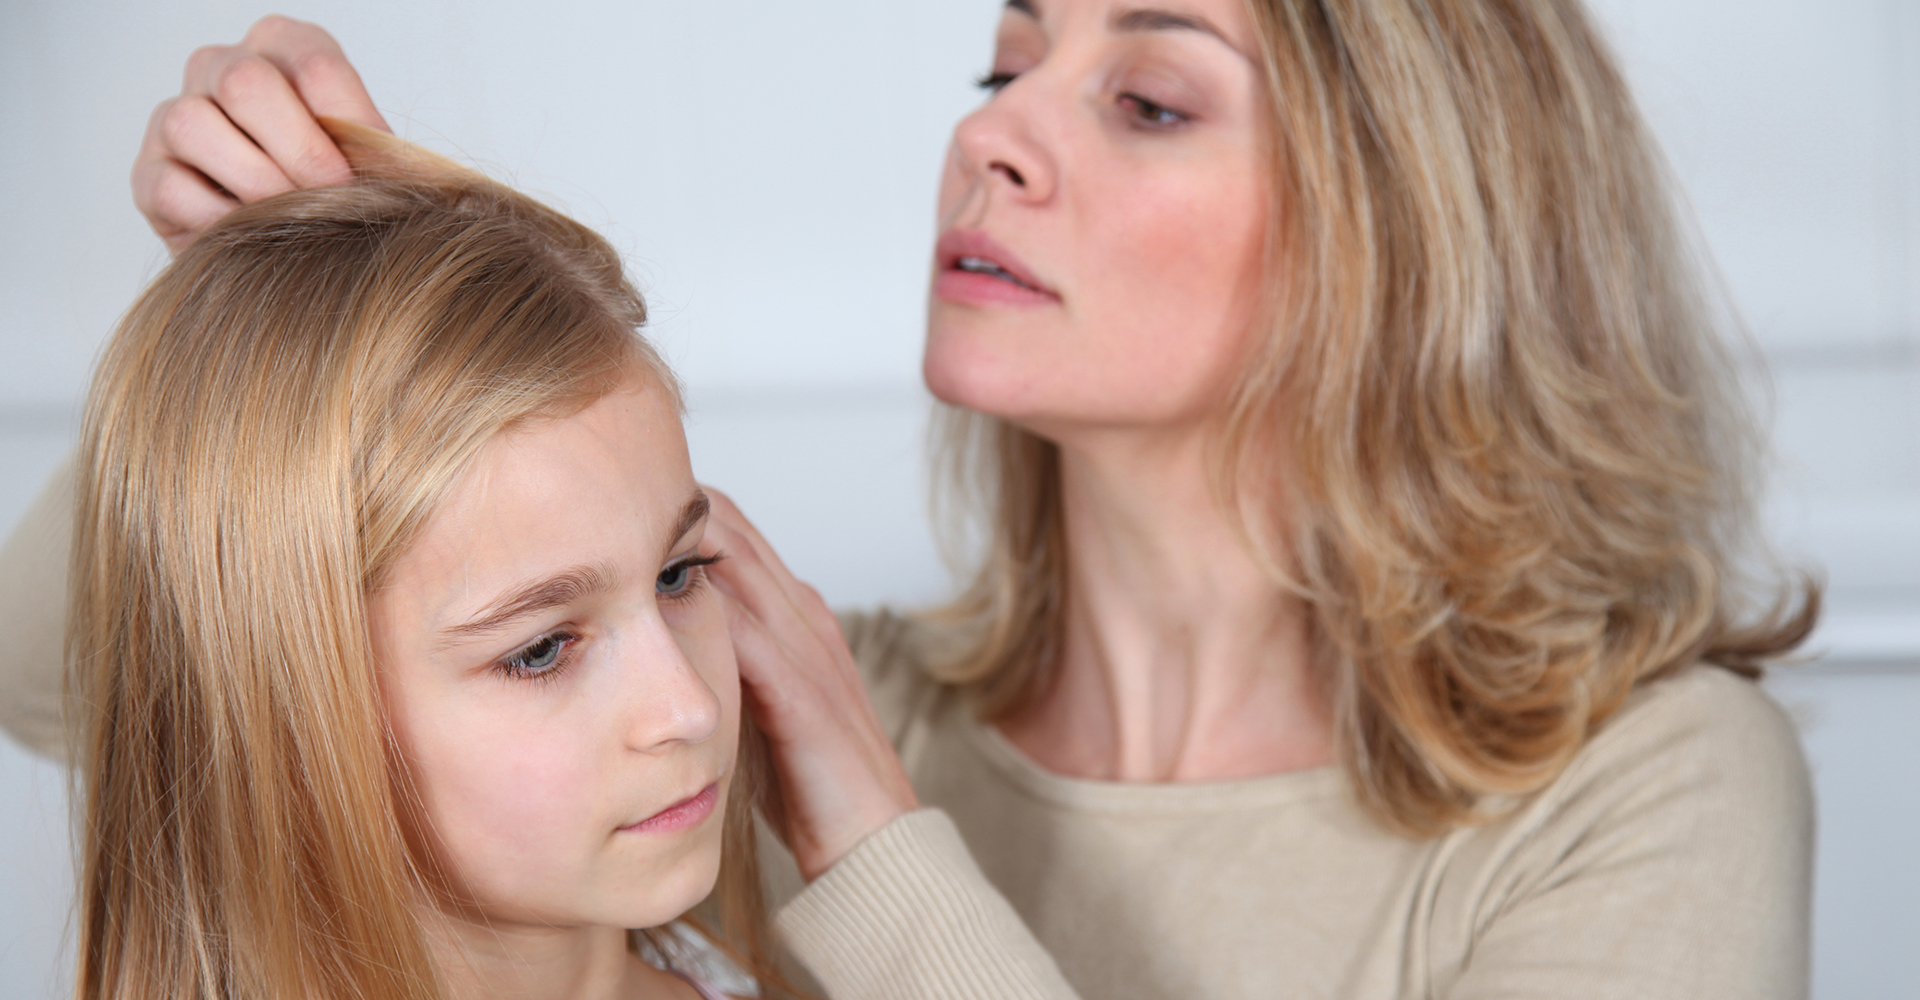 How to clean after lice